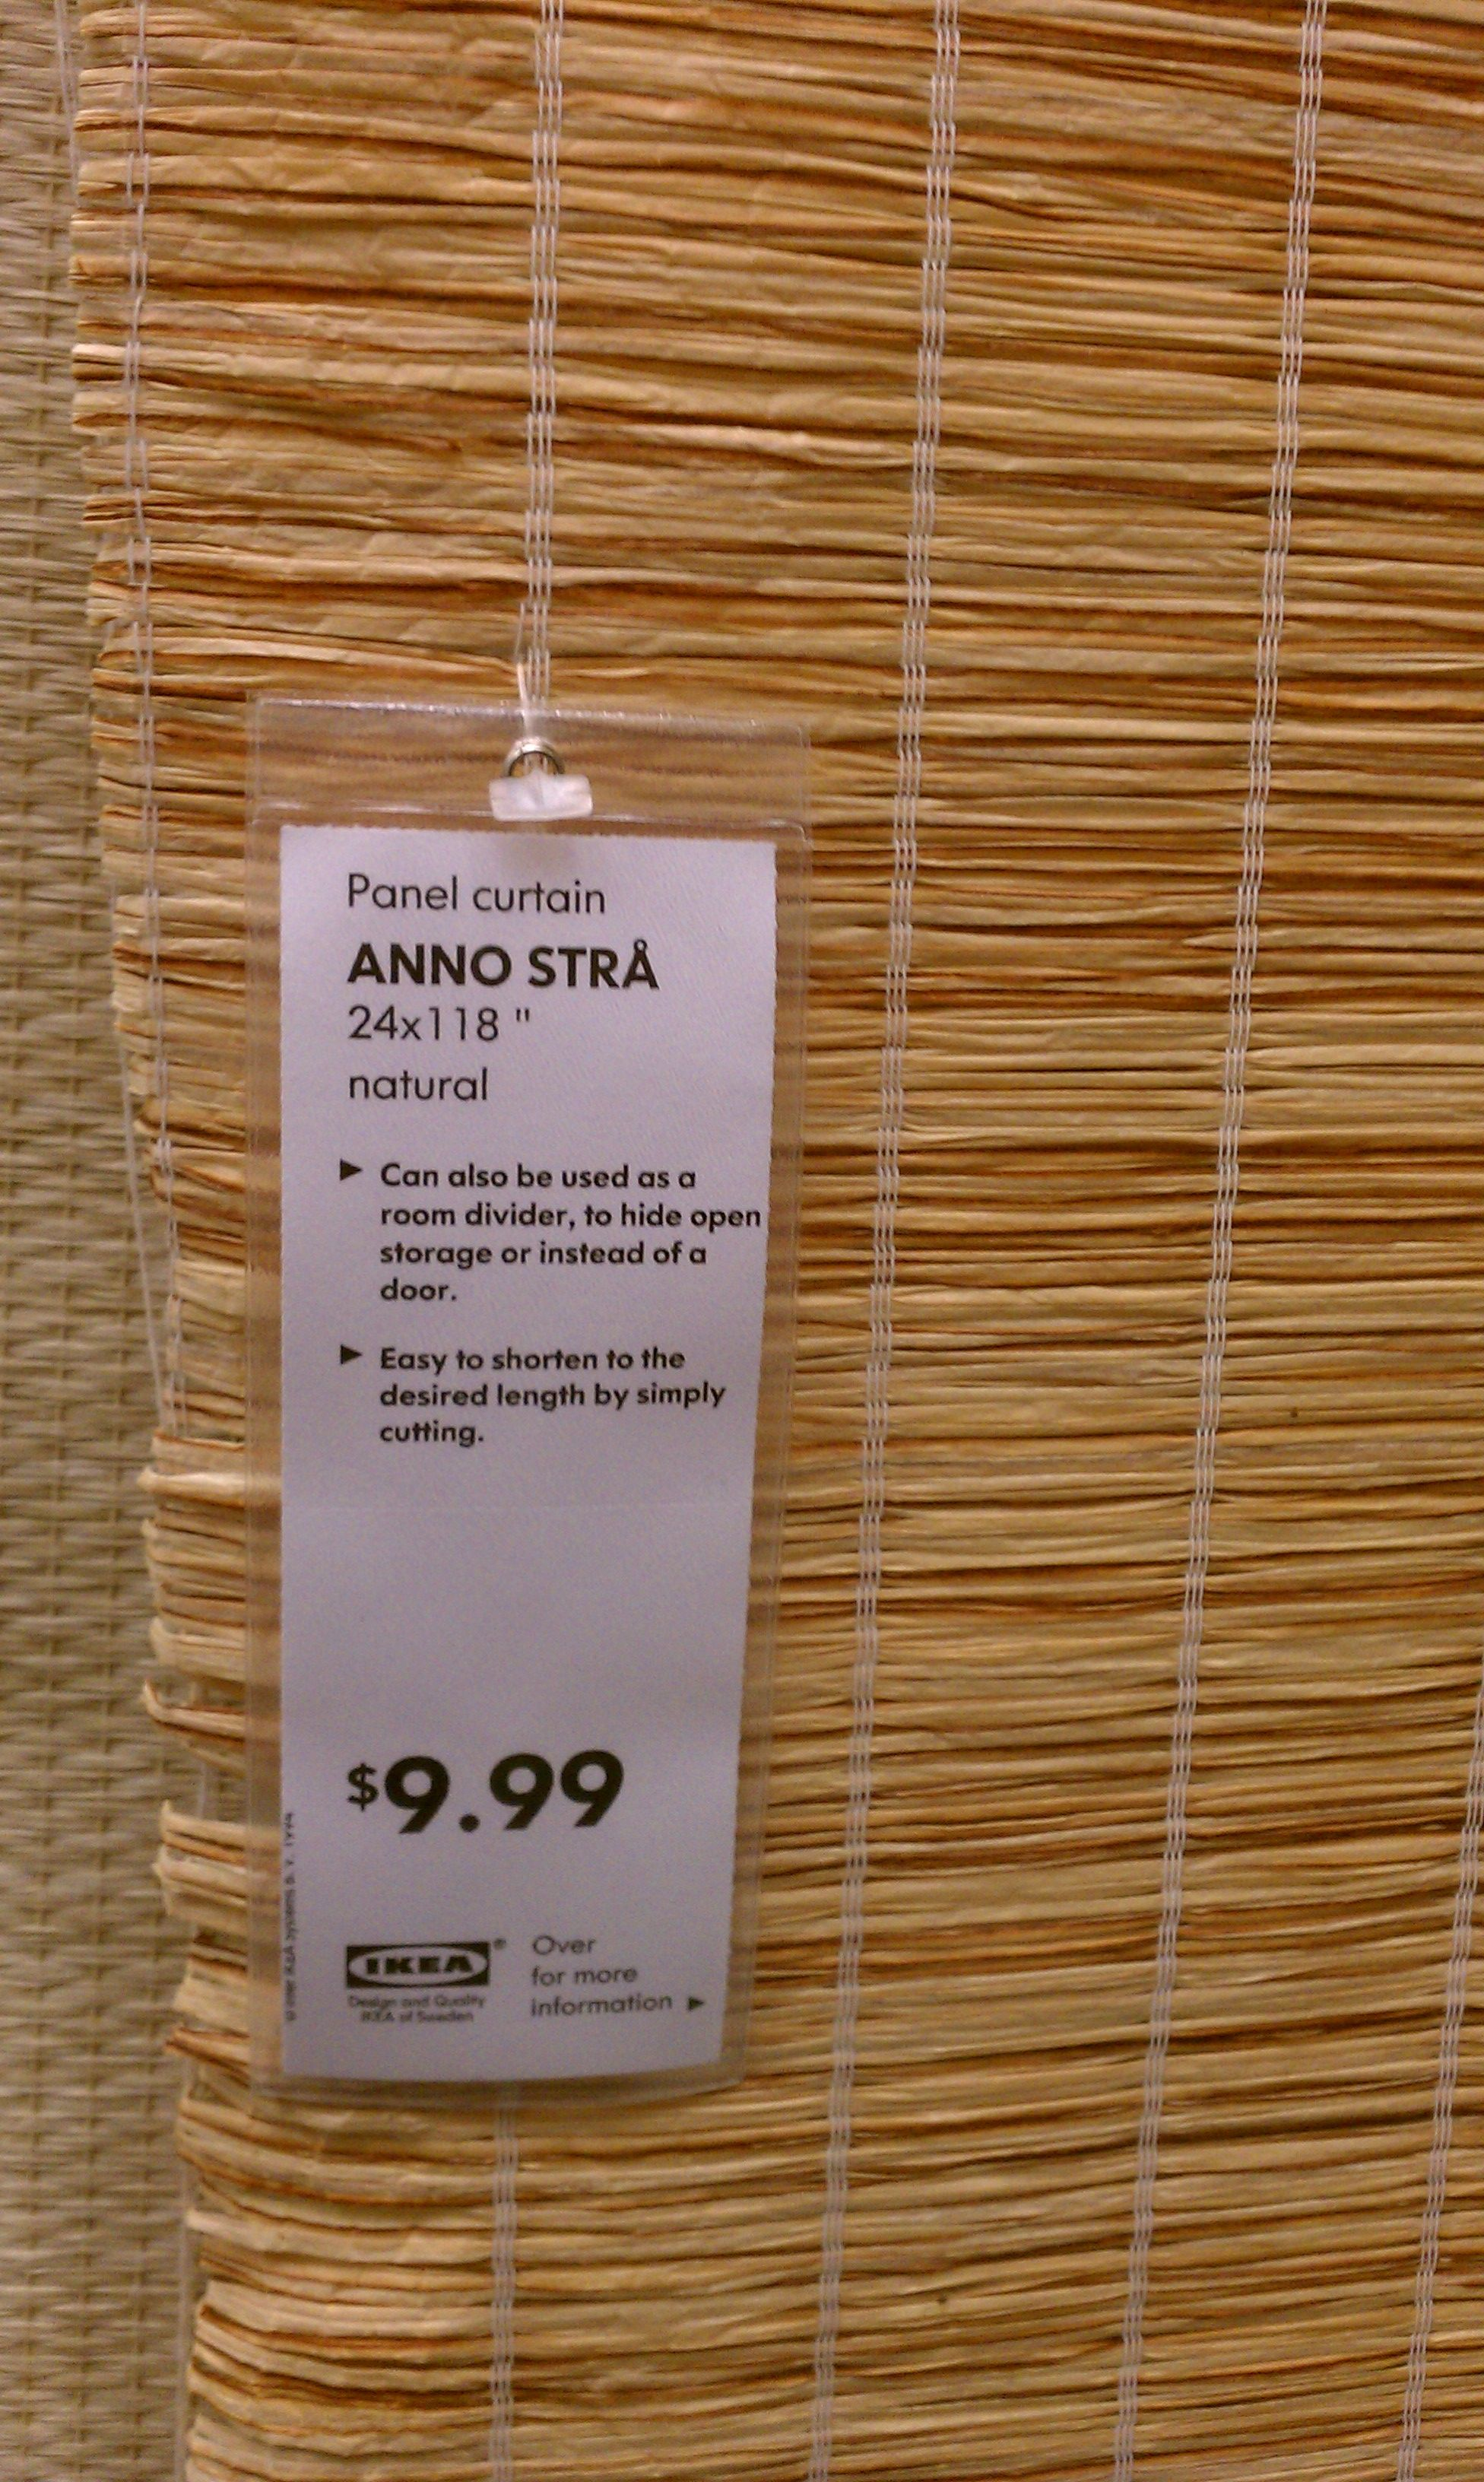 Flächenvorhang Rattan 10 Anno Stra Panel Curtain Ikea Bedroom Ideas Room